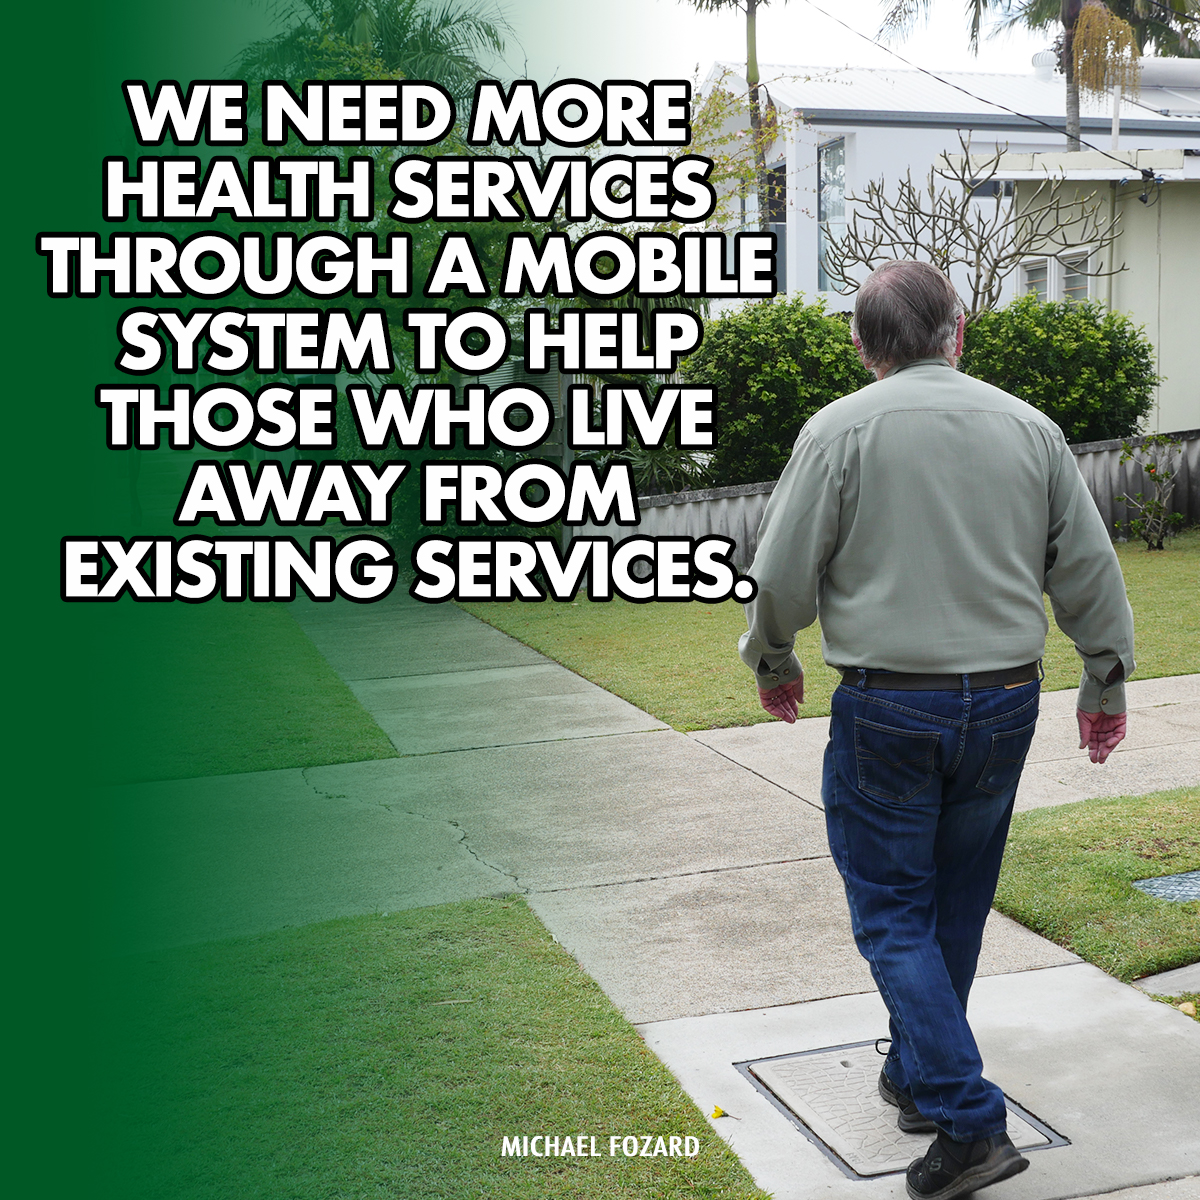 mobile-services.jpg